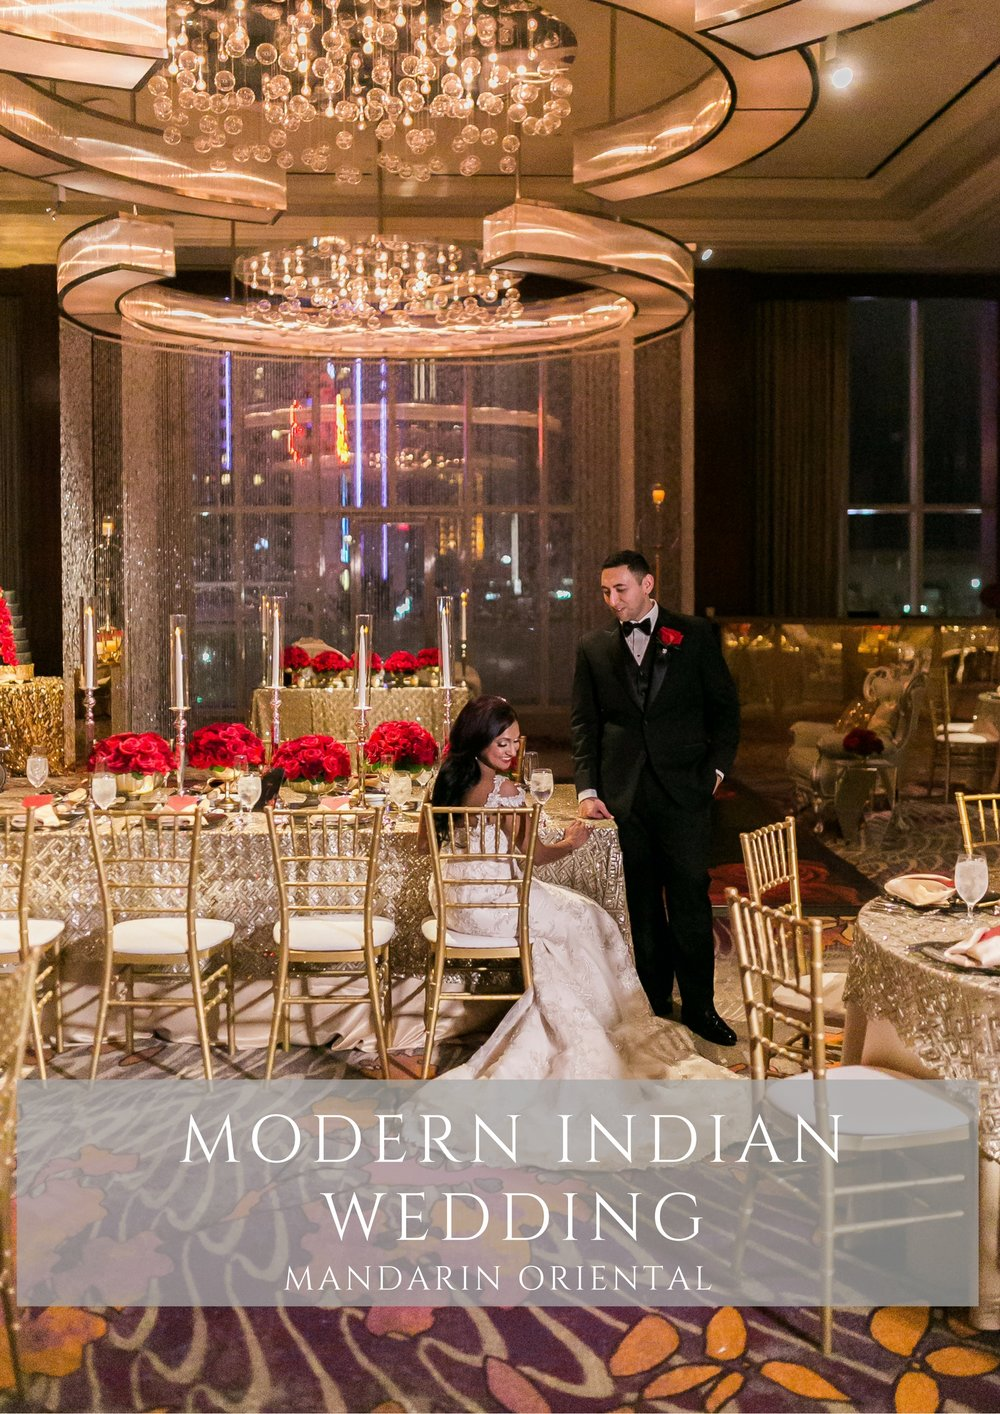 Modern Indian Wedding in Las Vegas with Red and Gold Color Scheme. Las Vegas Wedding Planner Andrea Eppolito. Photos by J. Anne Photography. Decor by Destinations by Design.